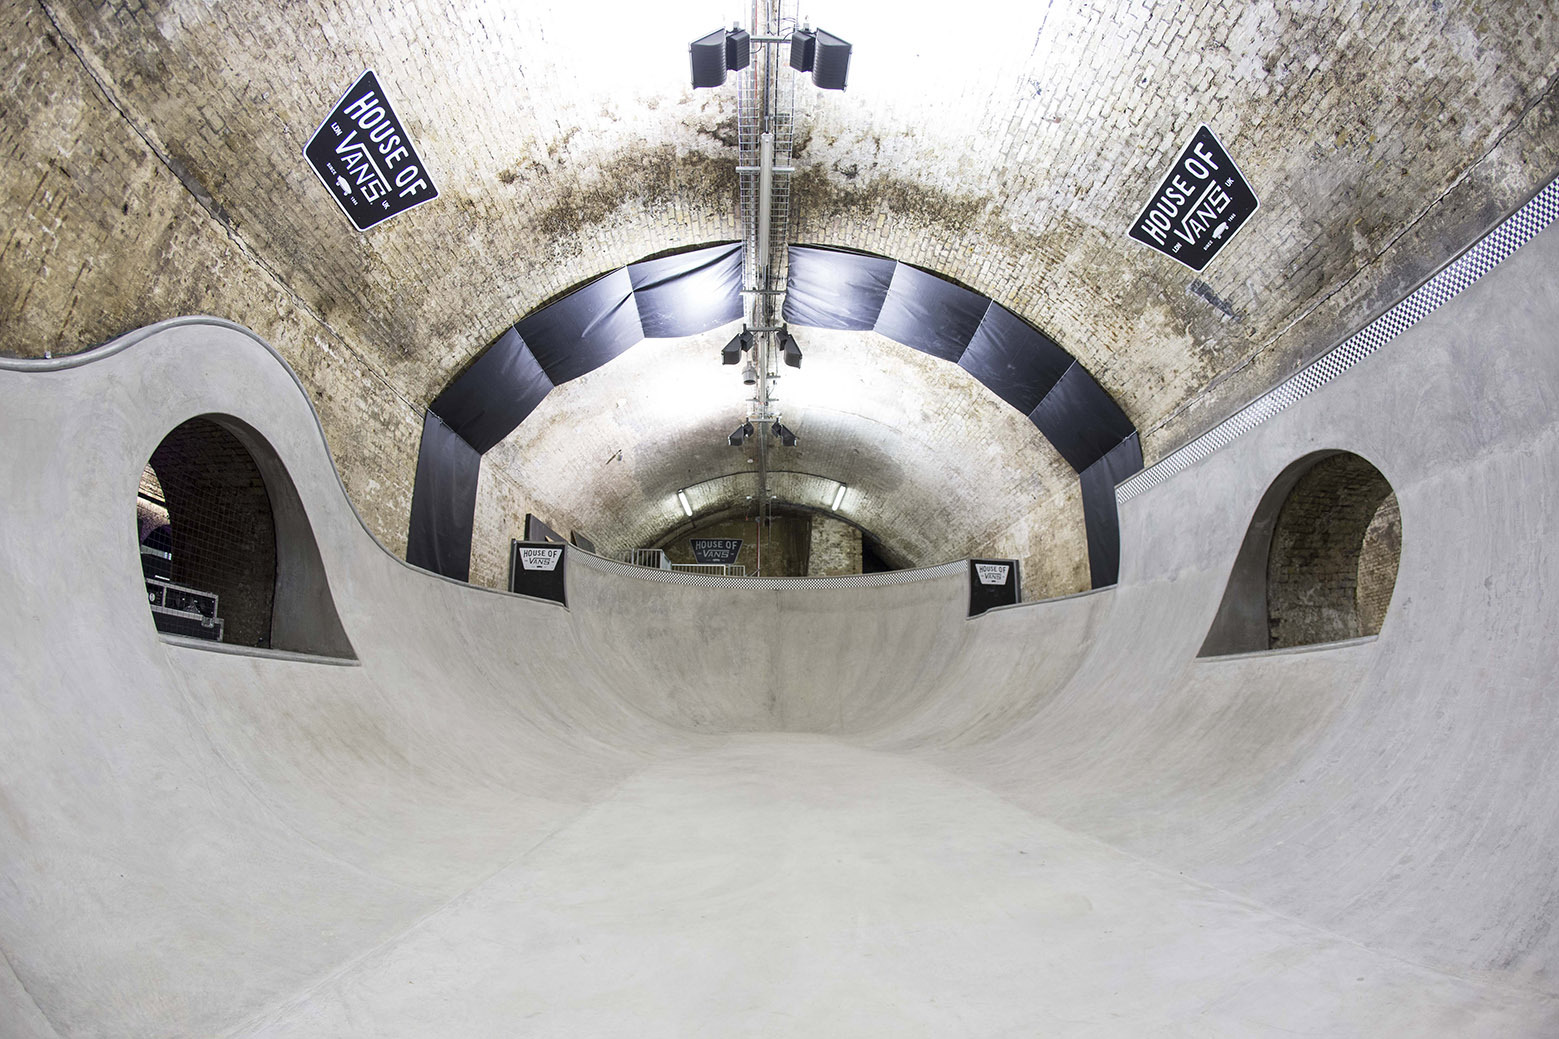 54b0674fe58ece9827000044_house-of-vans-london-tim-greatrex_house_of_vans_london_skatepark_-7-